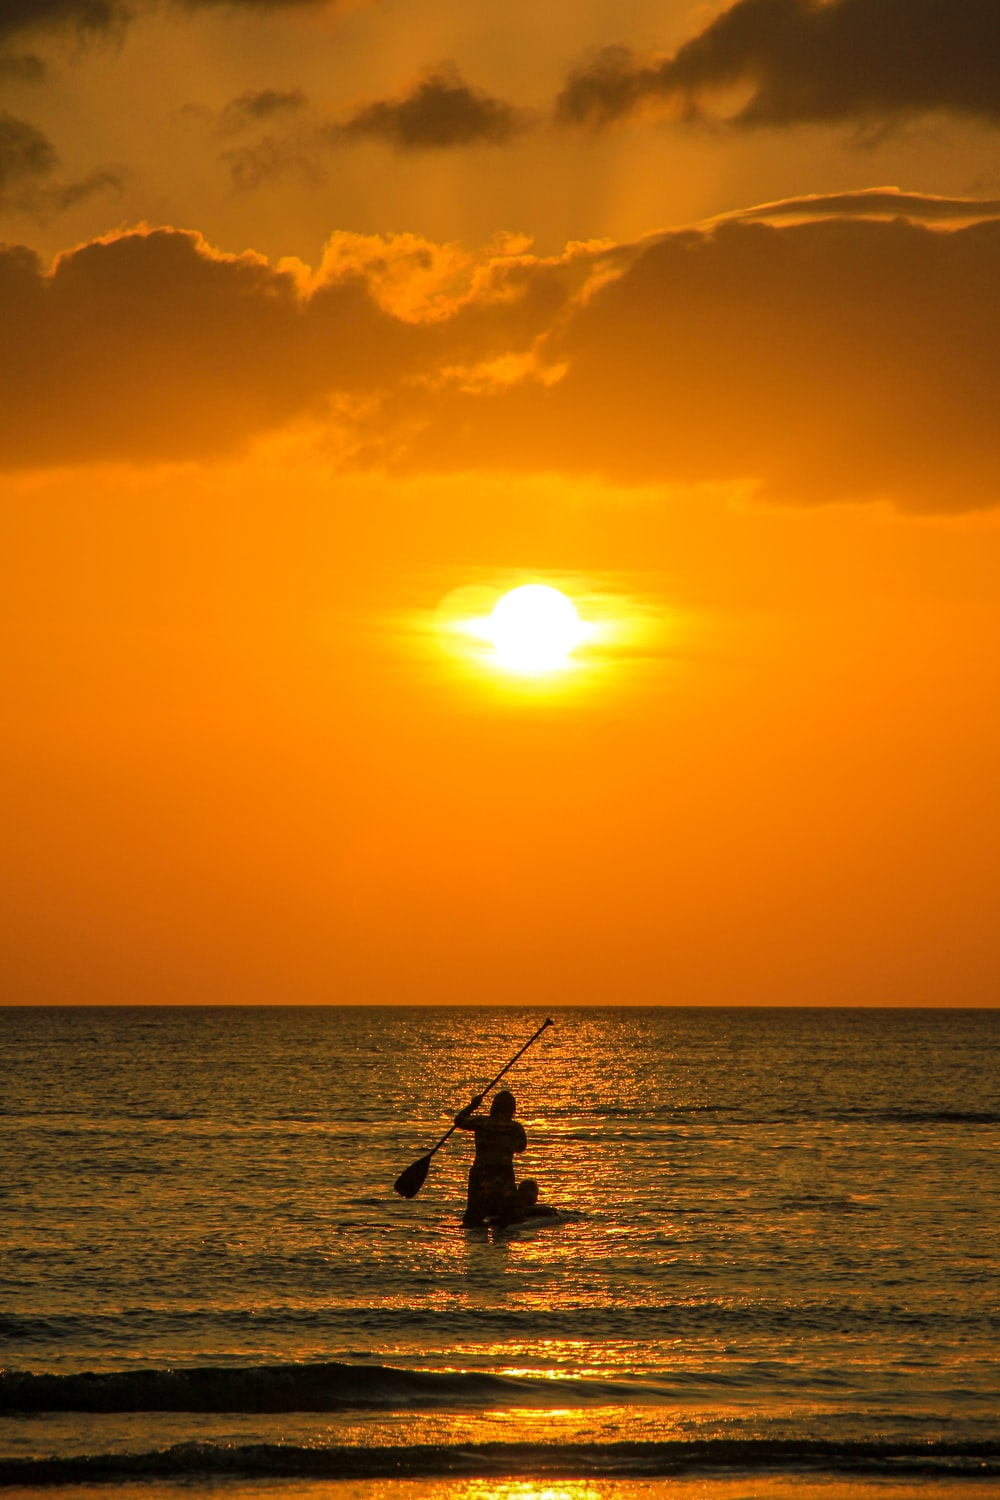 silhouette of man fishing during sunset